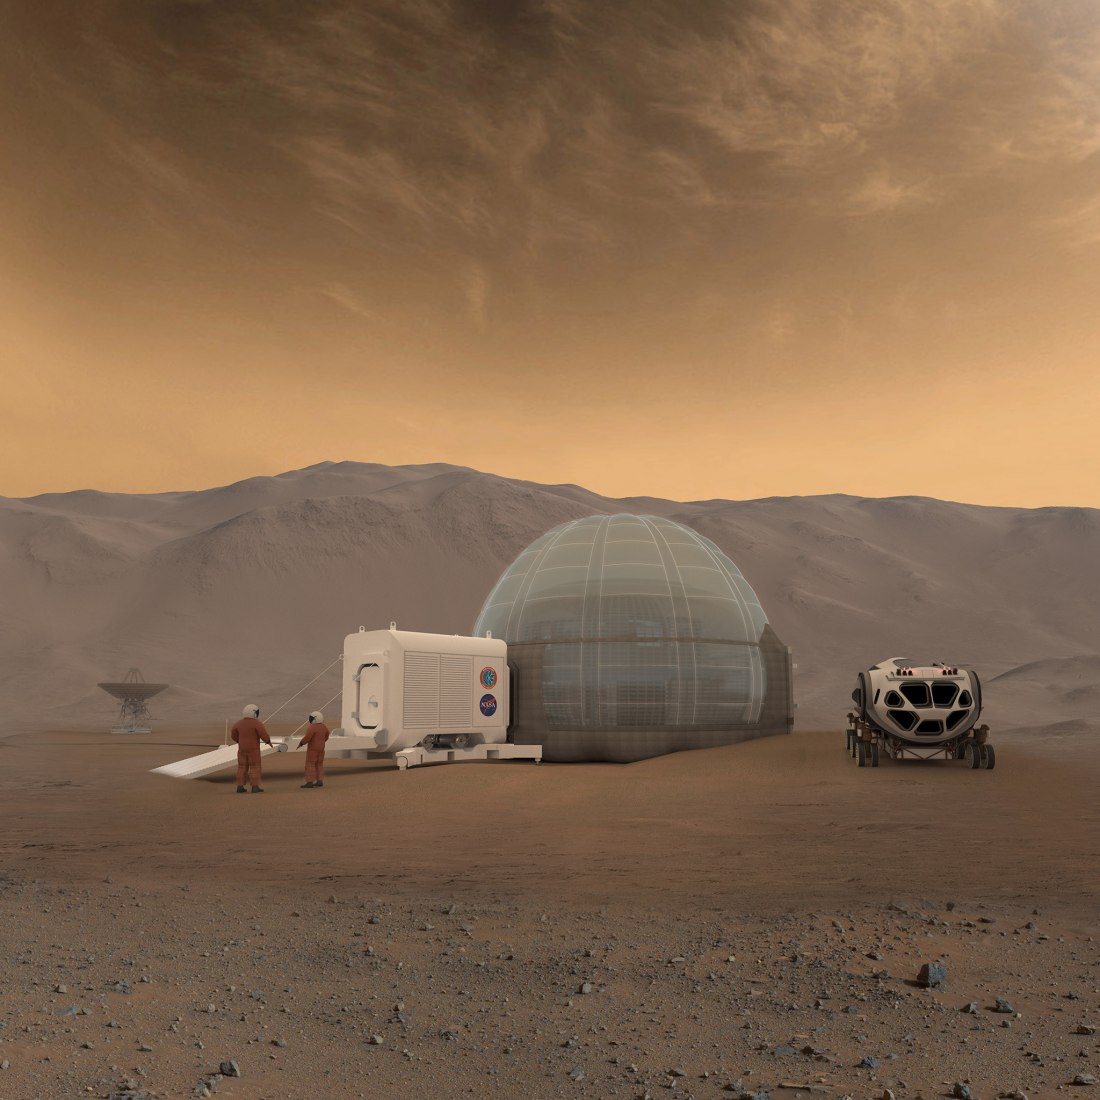 Rendering of the Mars Ice Home concept. Image courtesy of NASA/Clouds AO/SEArch